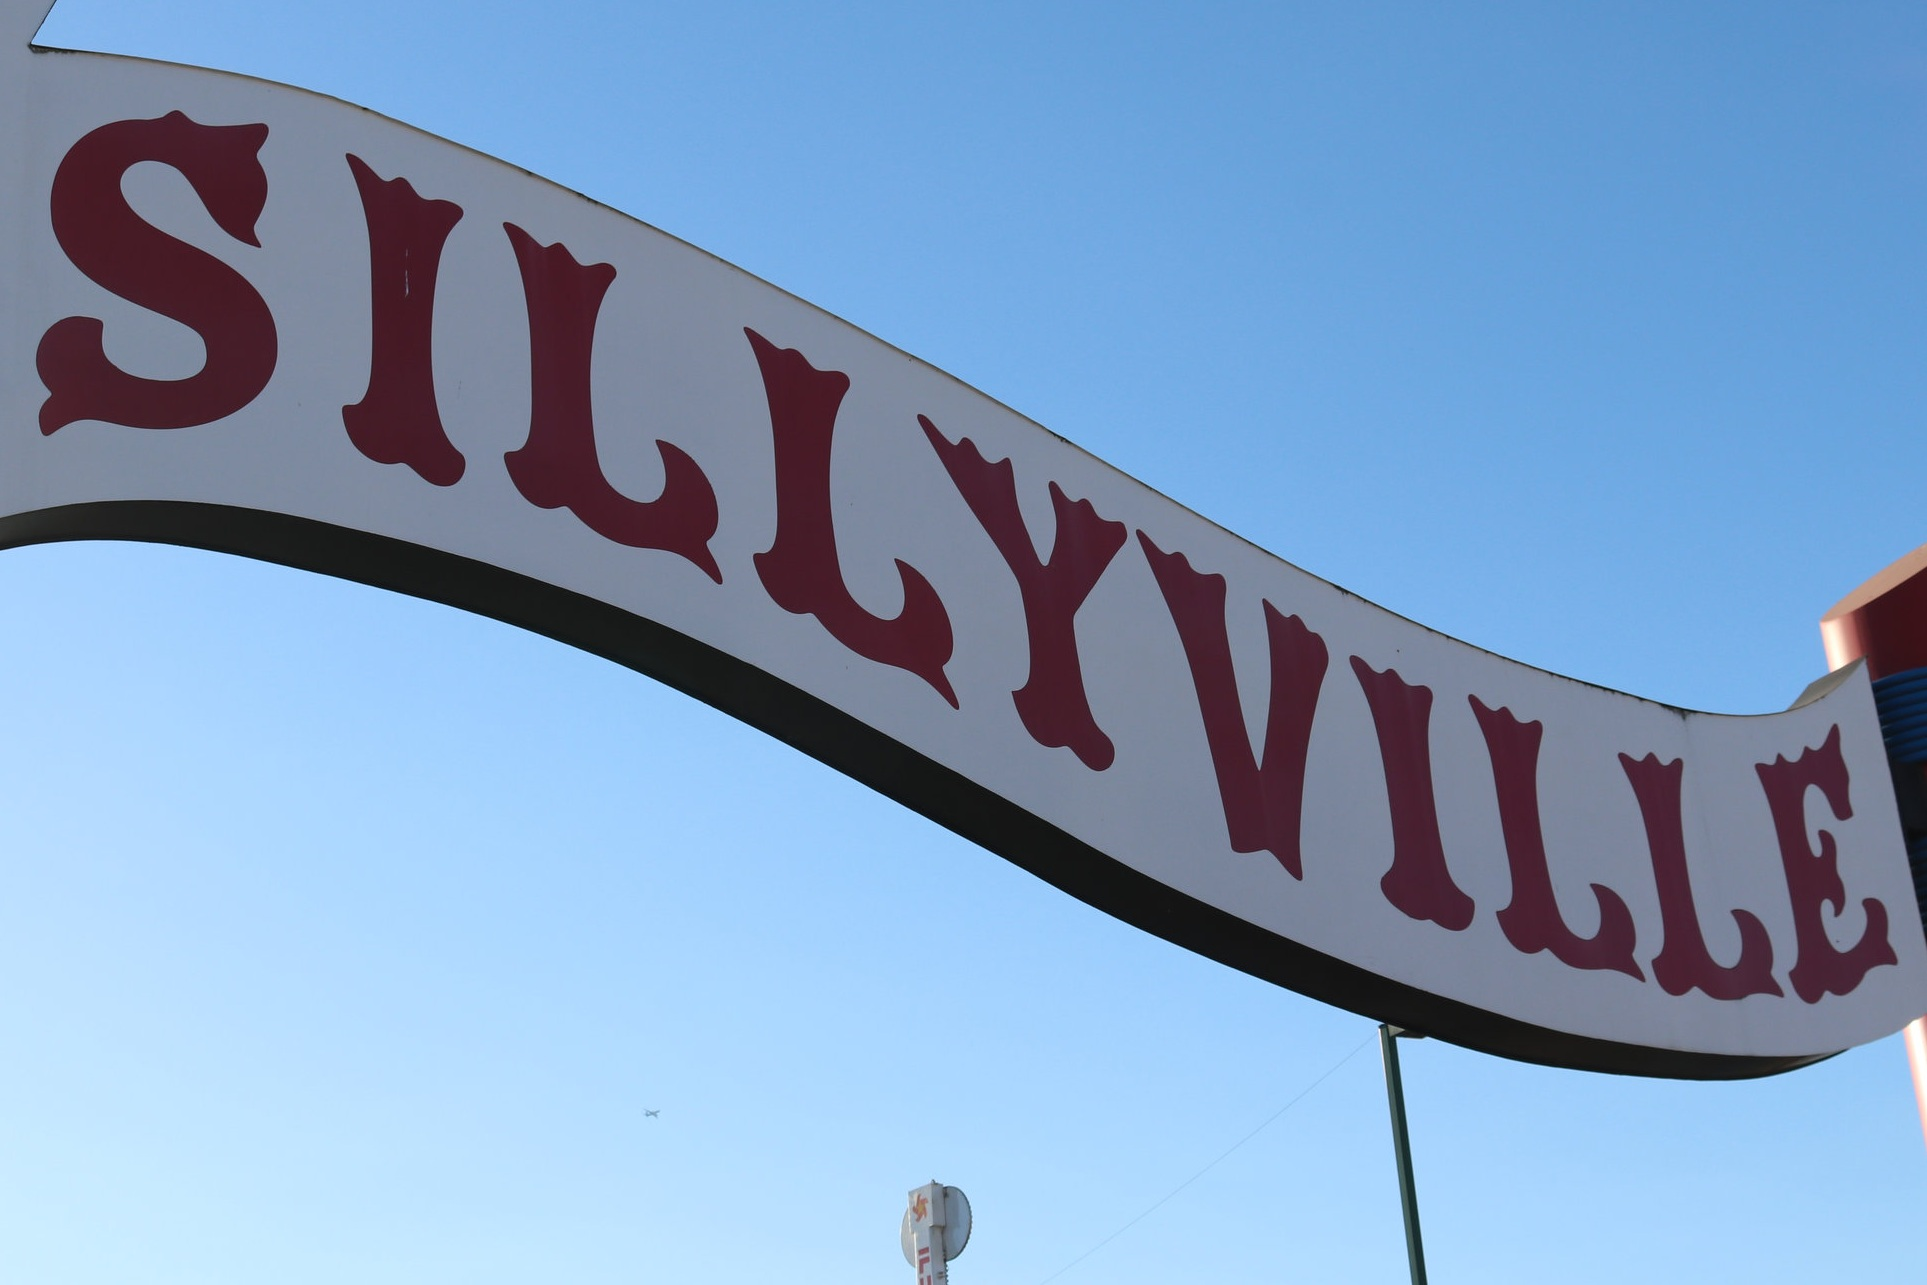 Welcome to Sillyville! Home of the English language. Just for starters, English does a lot of borrowing from other languages and alphabets (e.g., French, Dutch, Latin, Spanish, Japanese and the Runic alphabet). It has also changed how words are spelled and pronounced over the years multiple times, has many dialects, and even accepts different spellings of words. (Color or colour?)